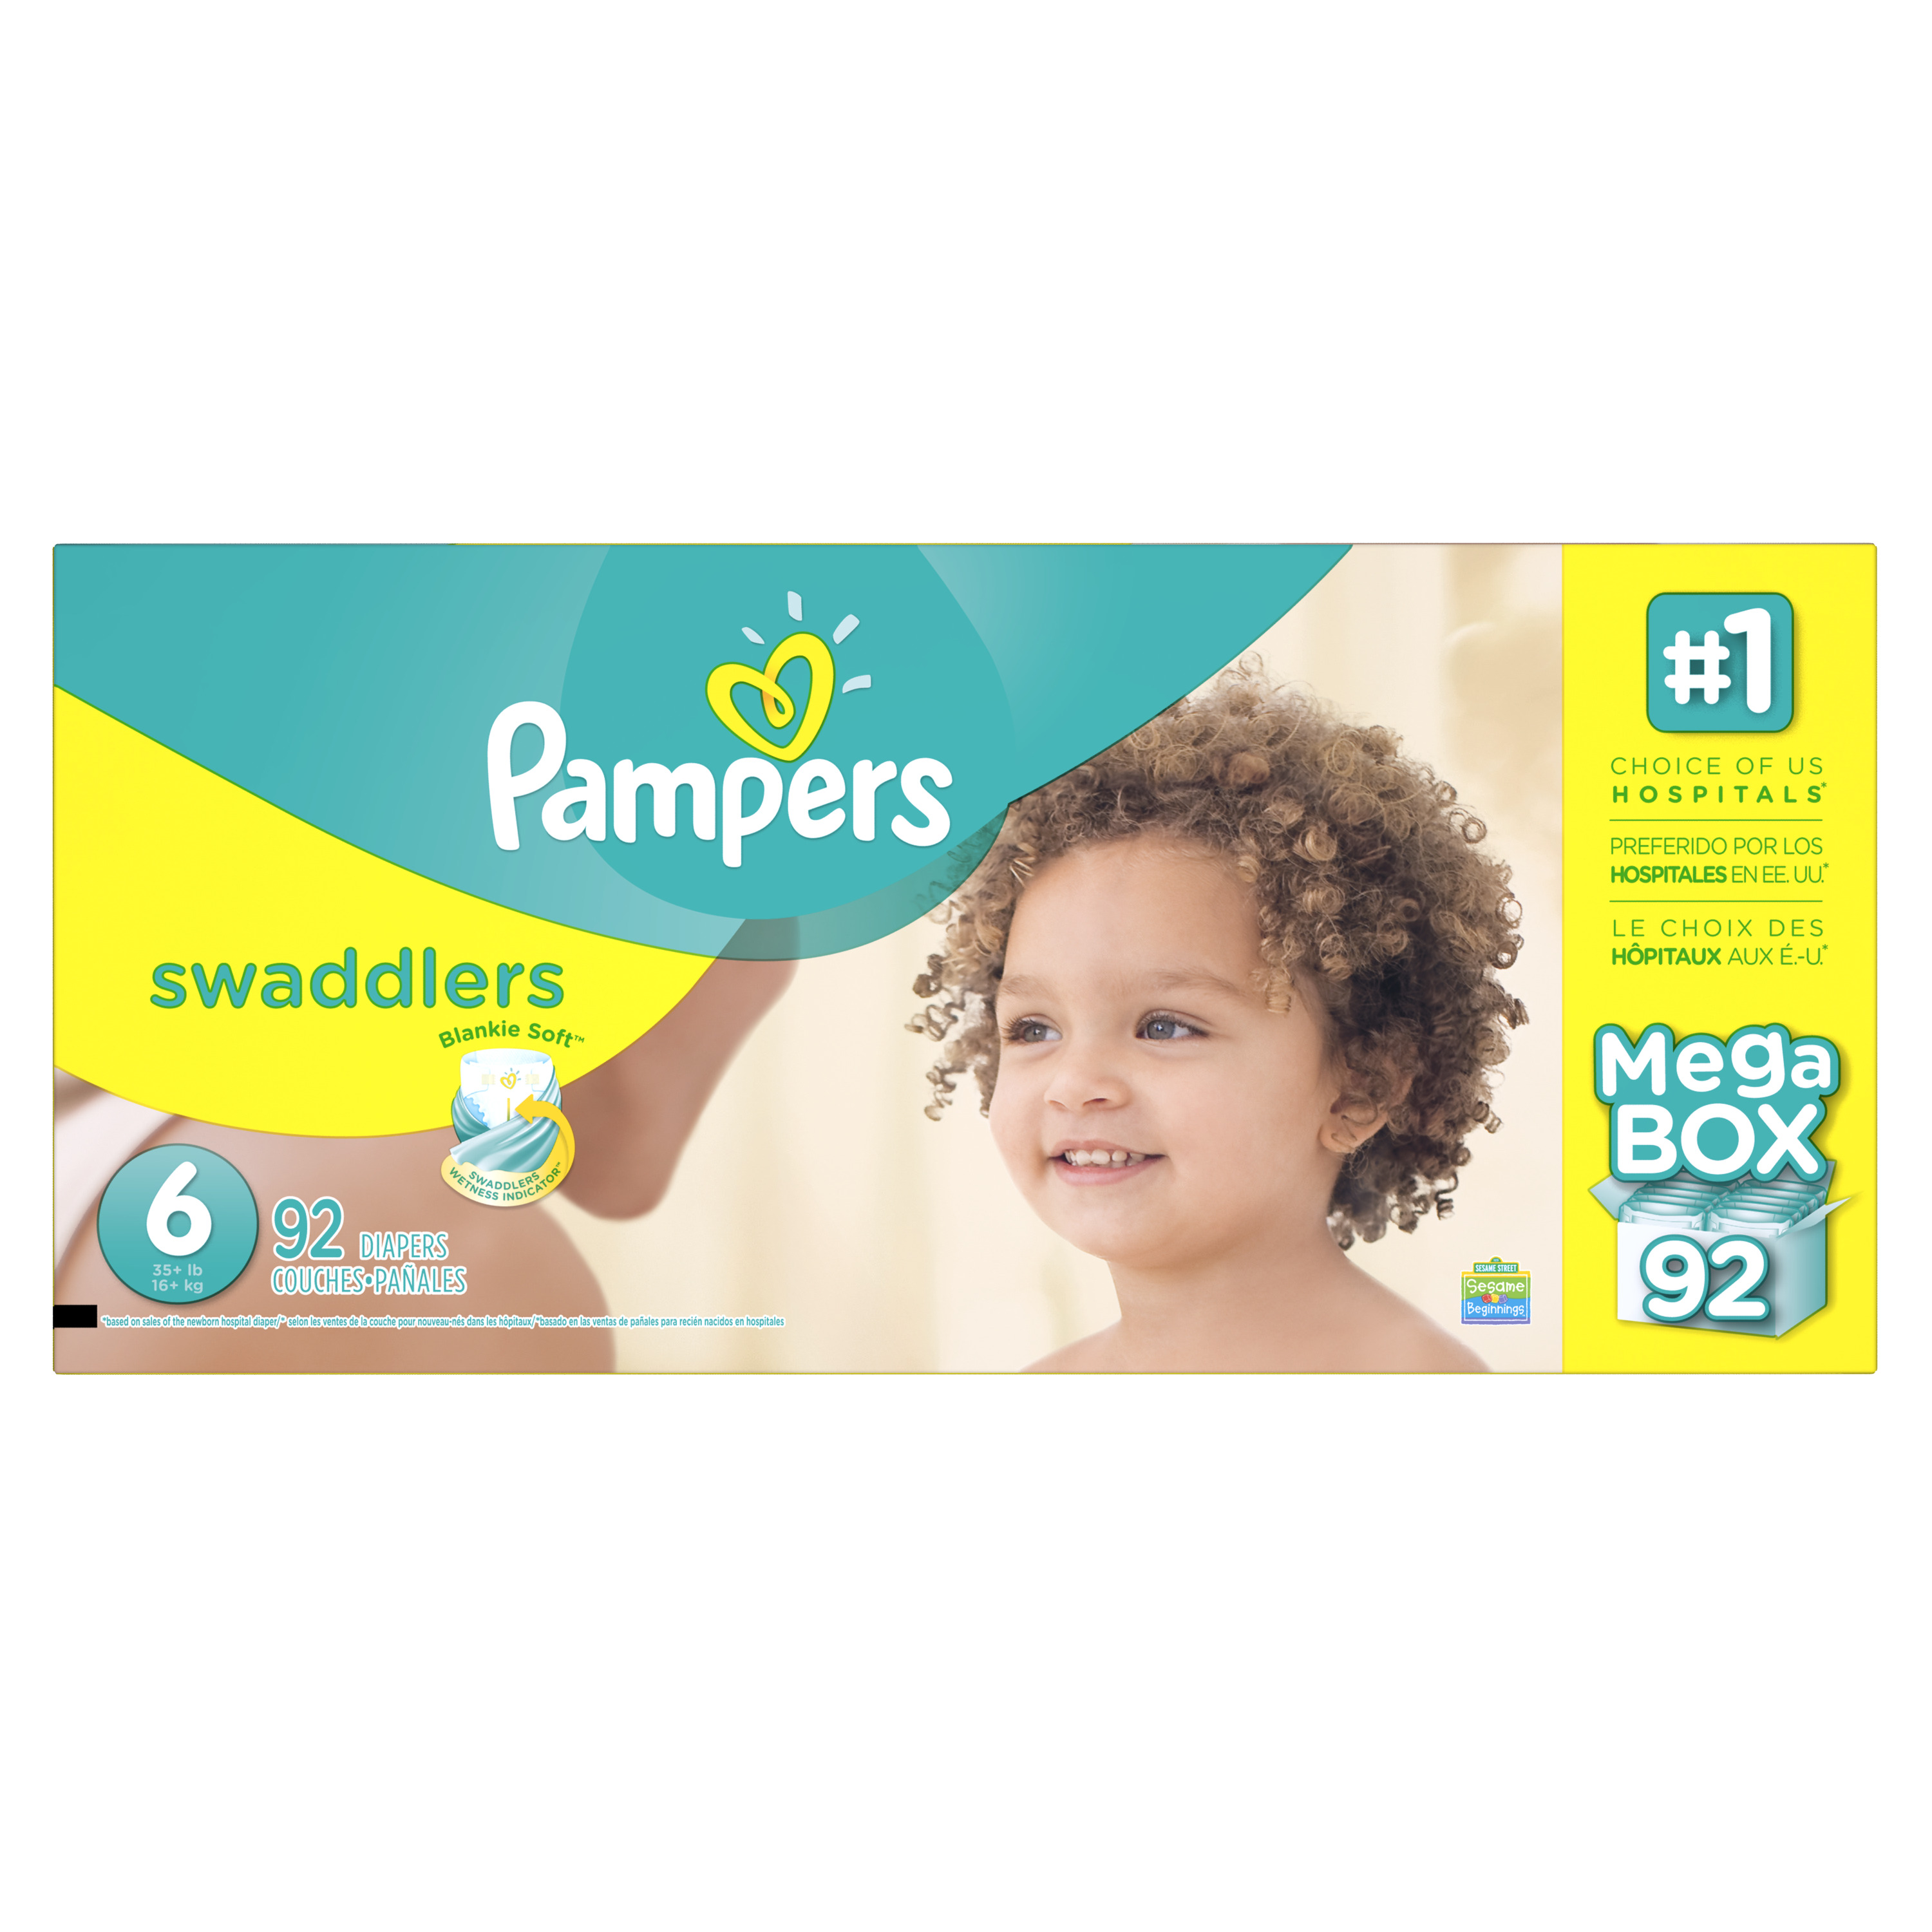 Product of 'Pampers' Swaddlers Size 6 Diapers; 92 ct. - Bulk Qty, Free Shipping - Comfortable, Soft, No Leaking & Good nite Diapers